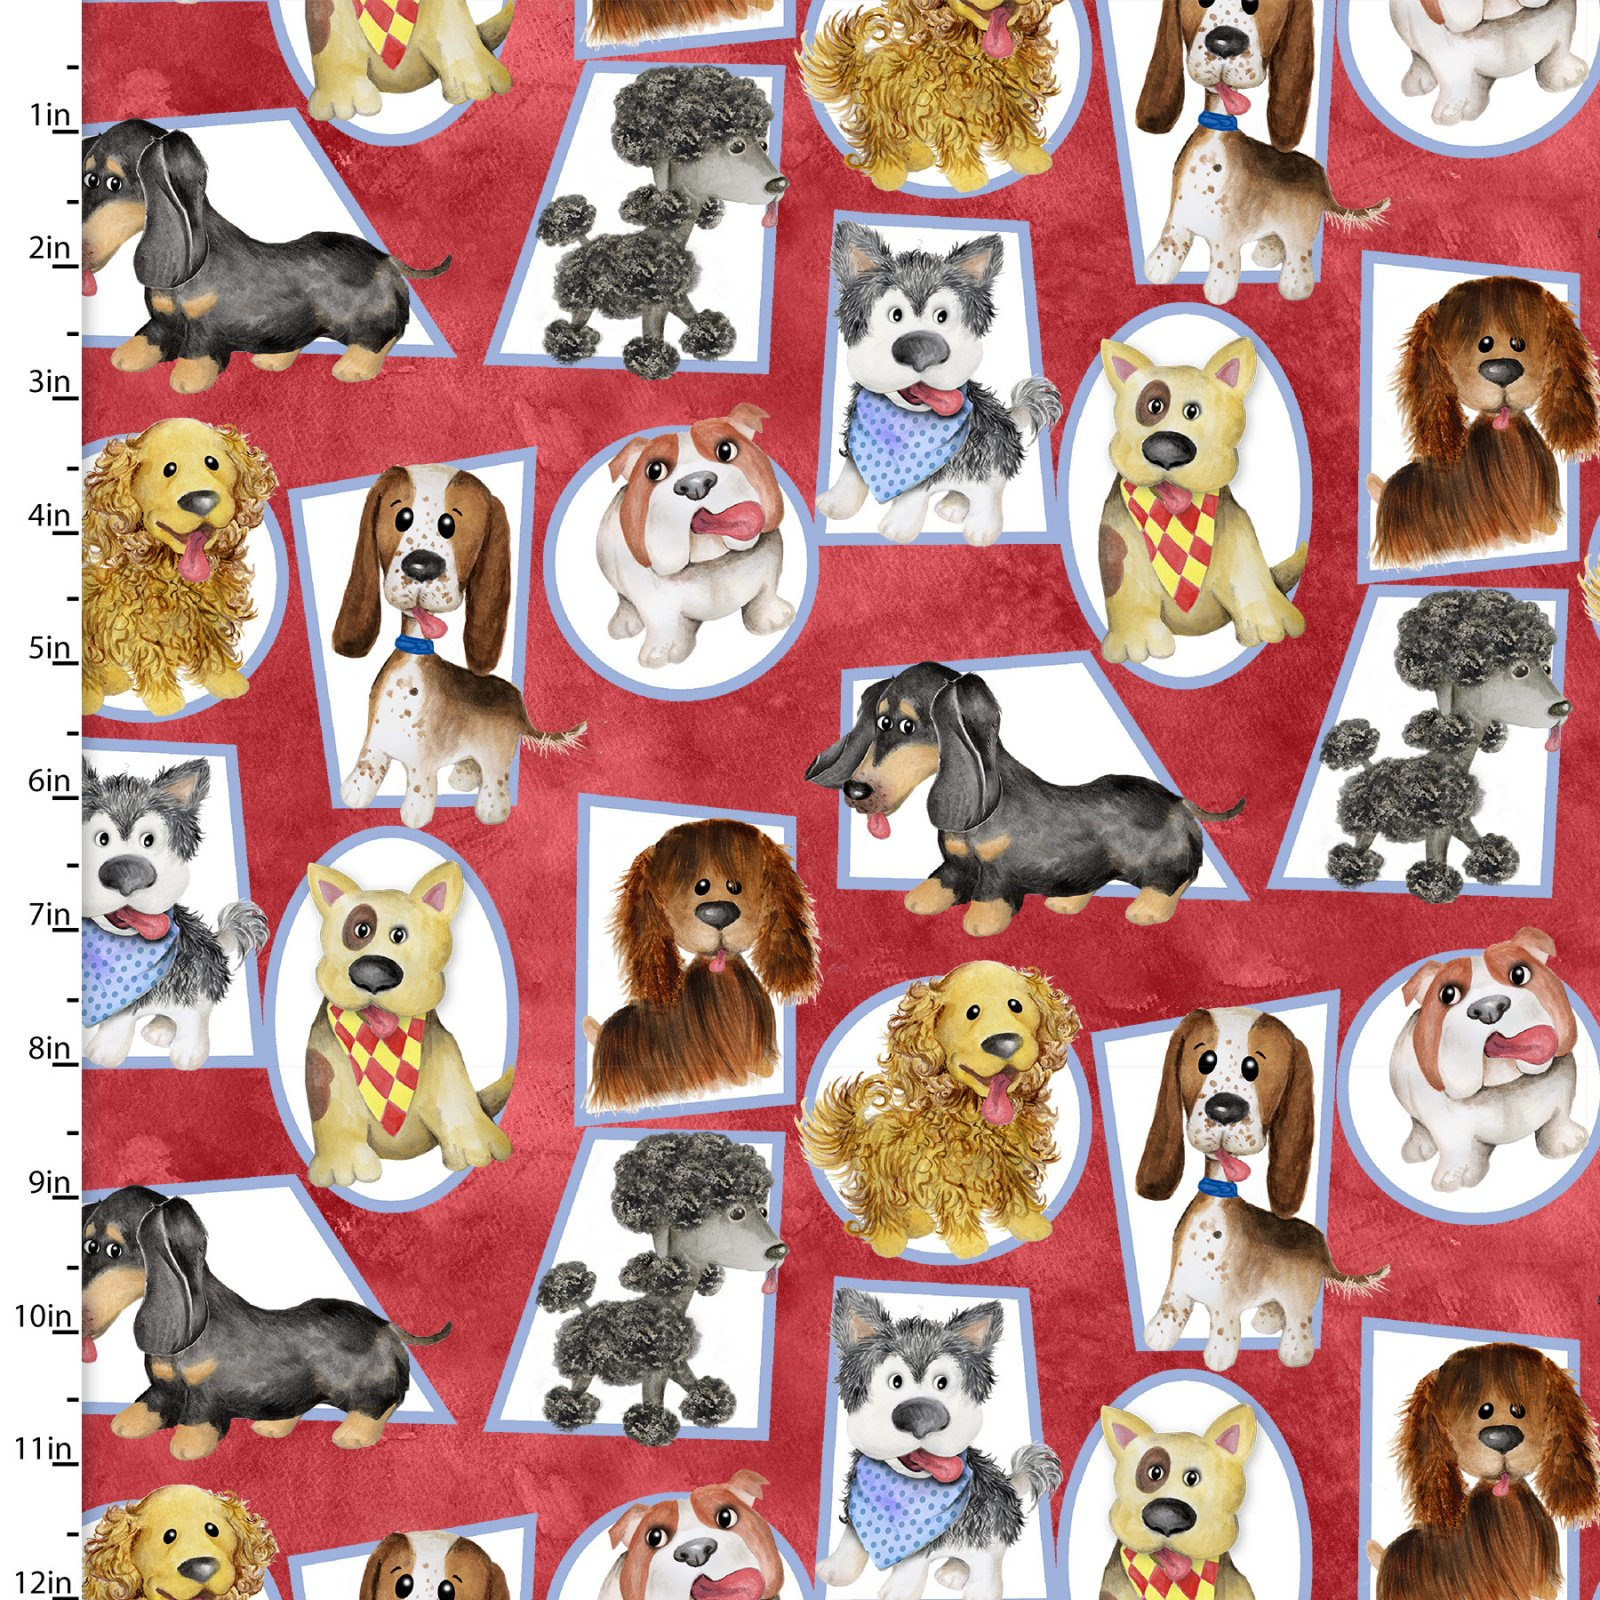 3 Wishes Puppy Pals 13828-RED Dogs in frames